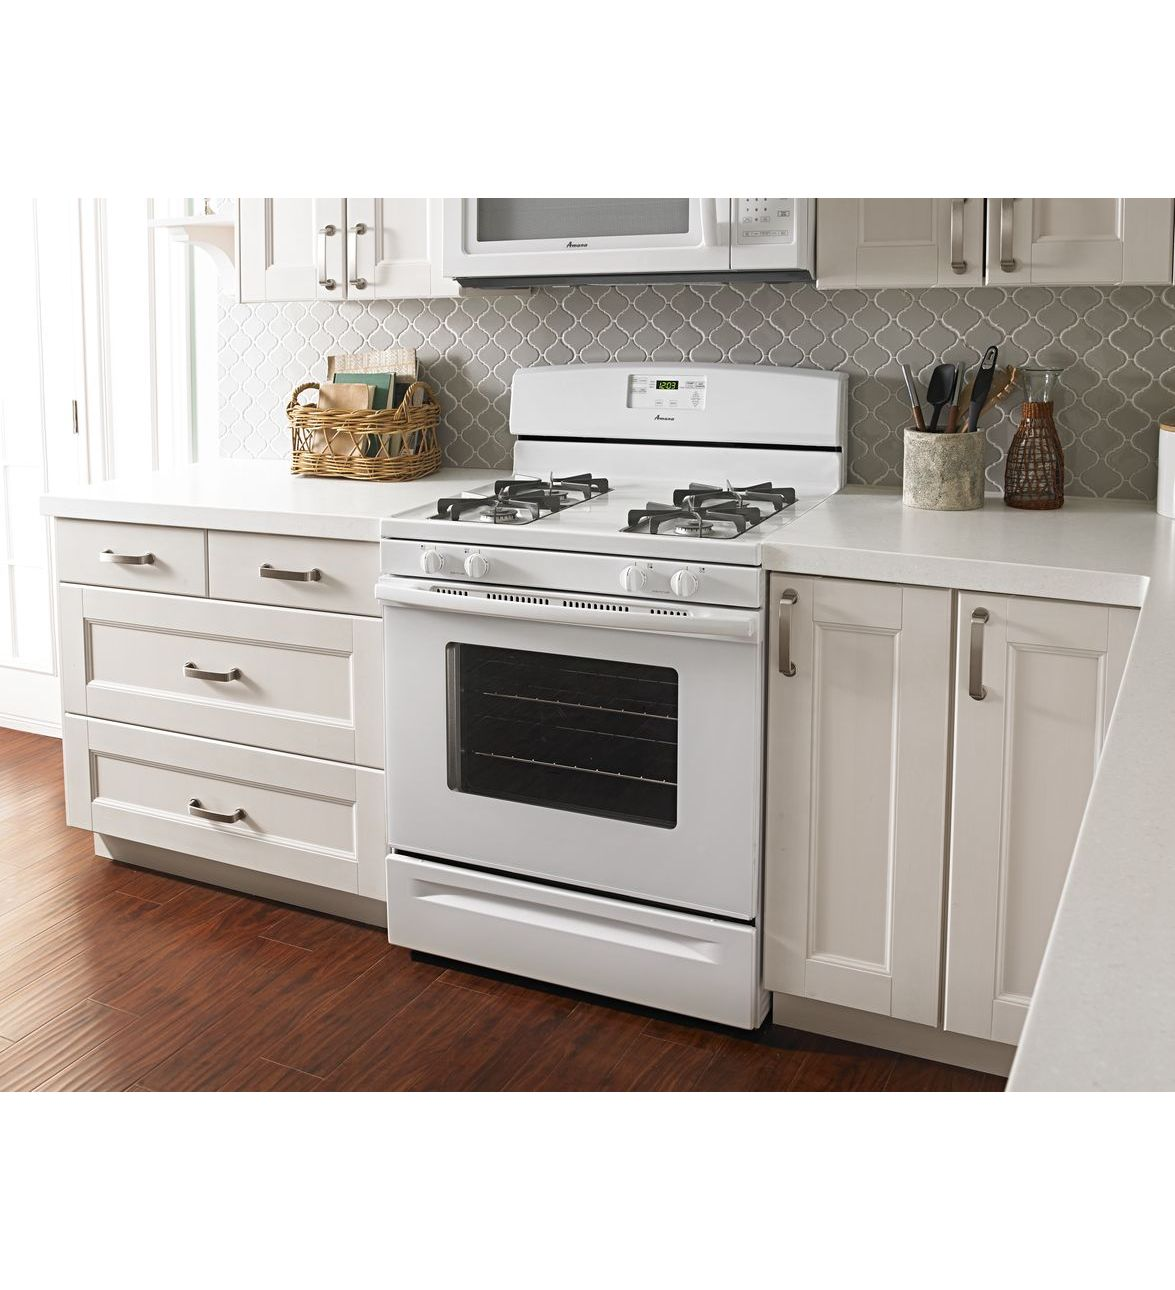 (AGR5630BDW) Amana® 5.0 Cu. Ft. Gas Oven Range With Easy